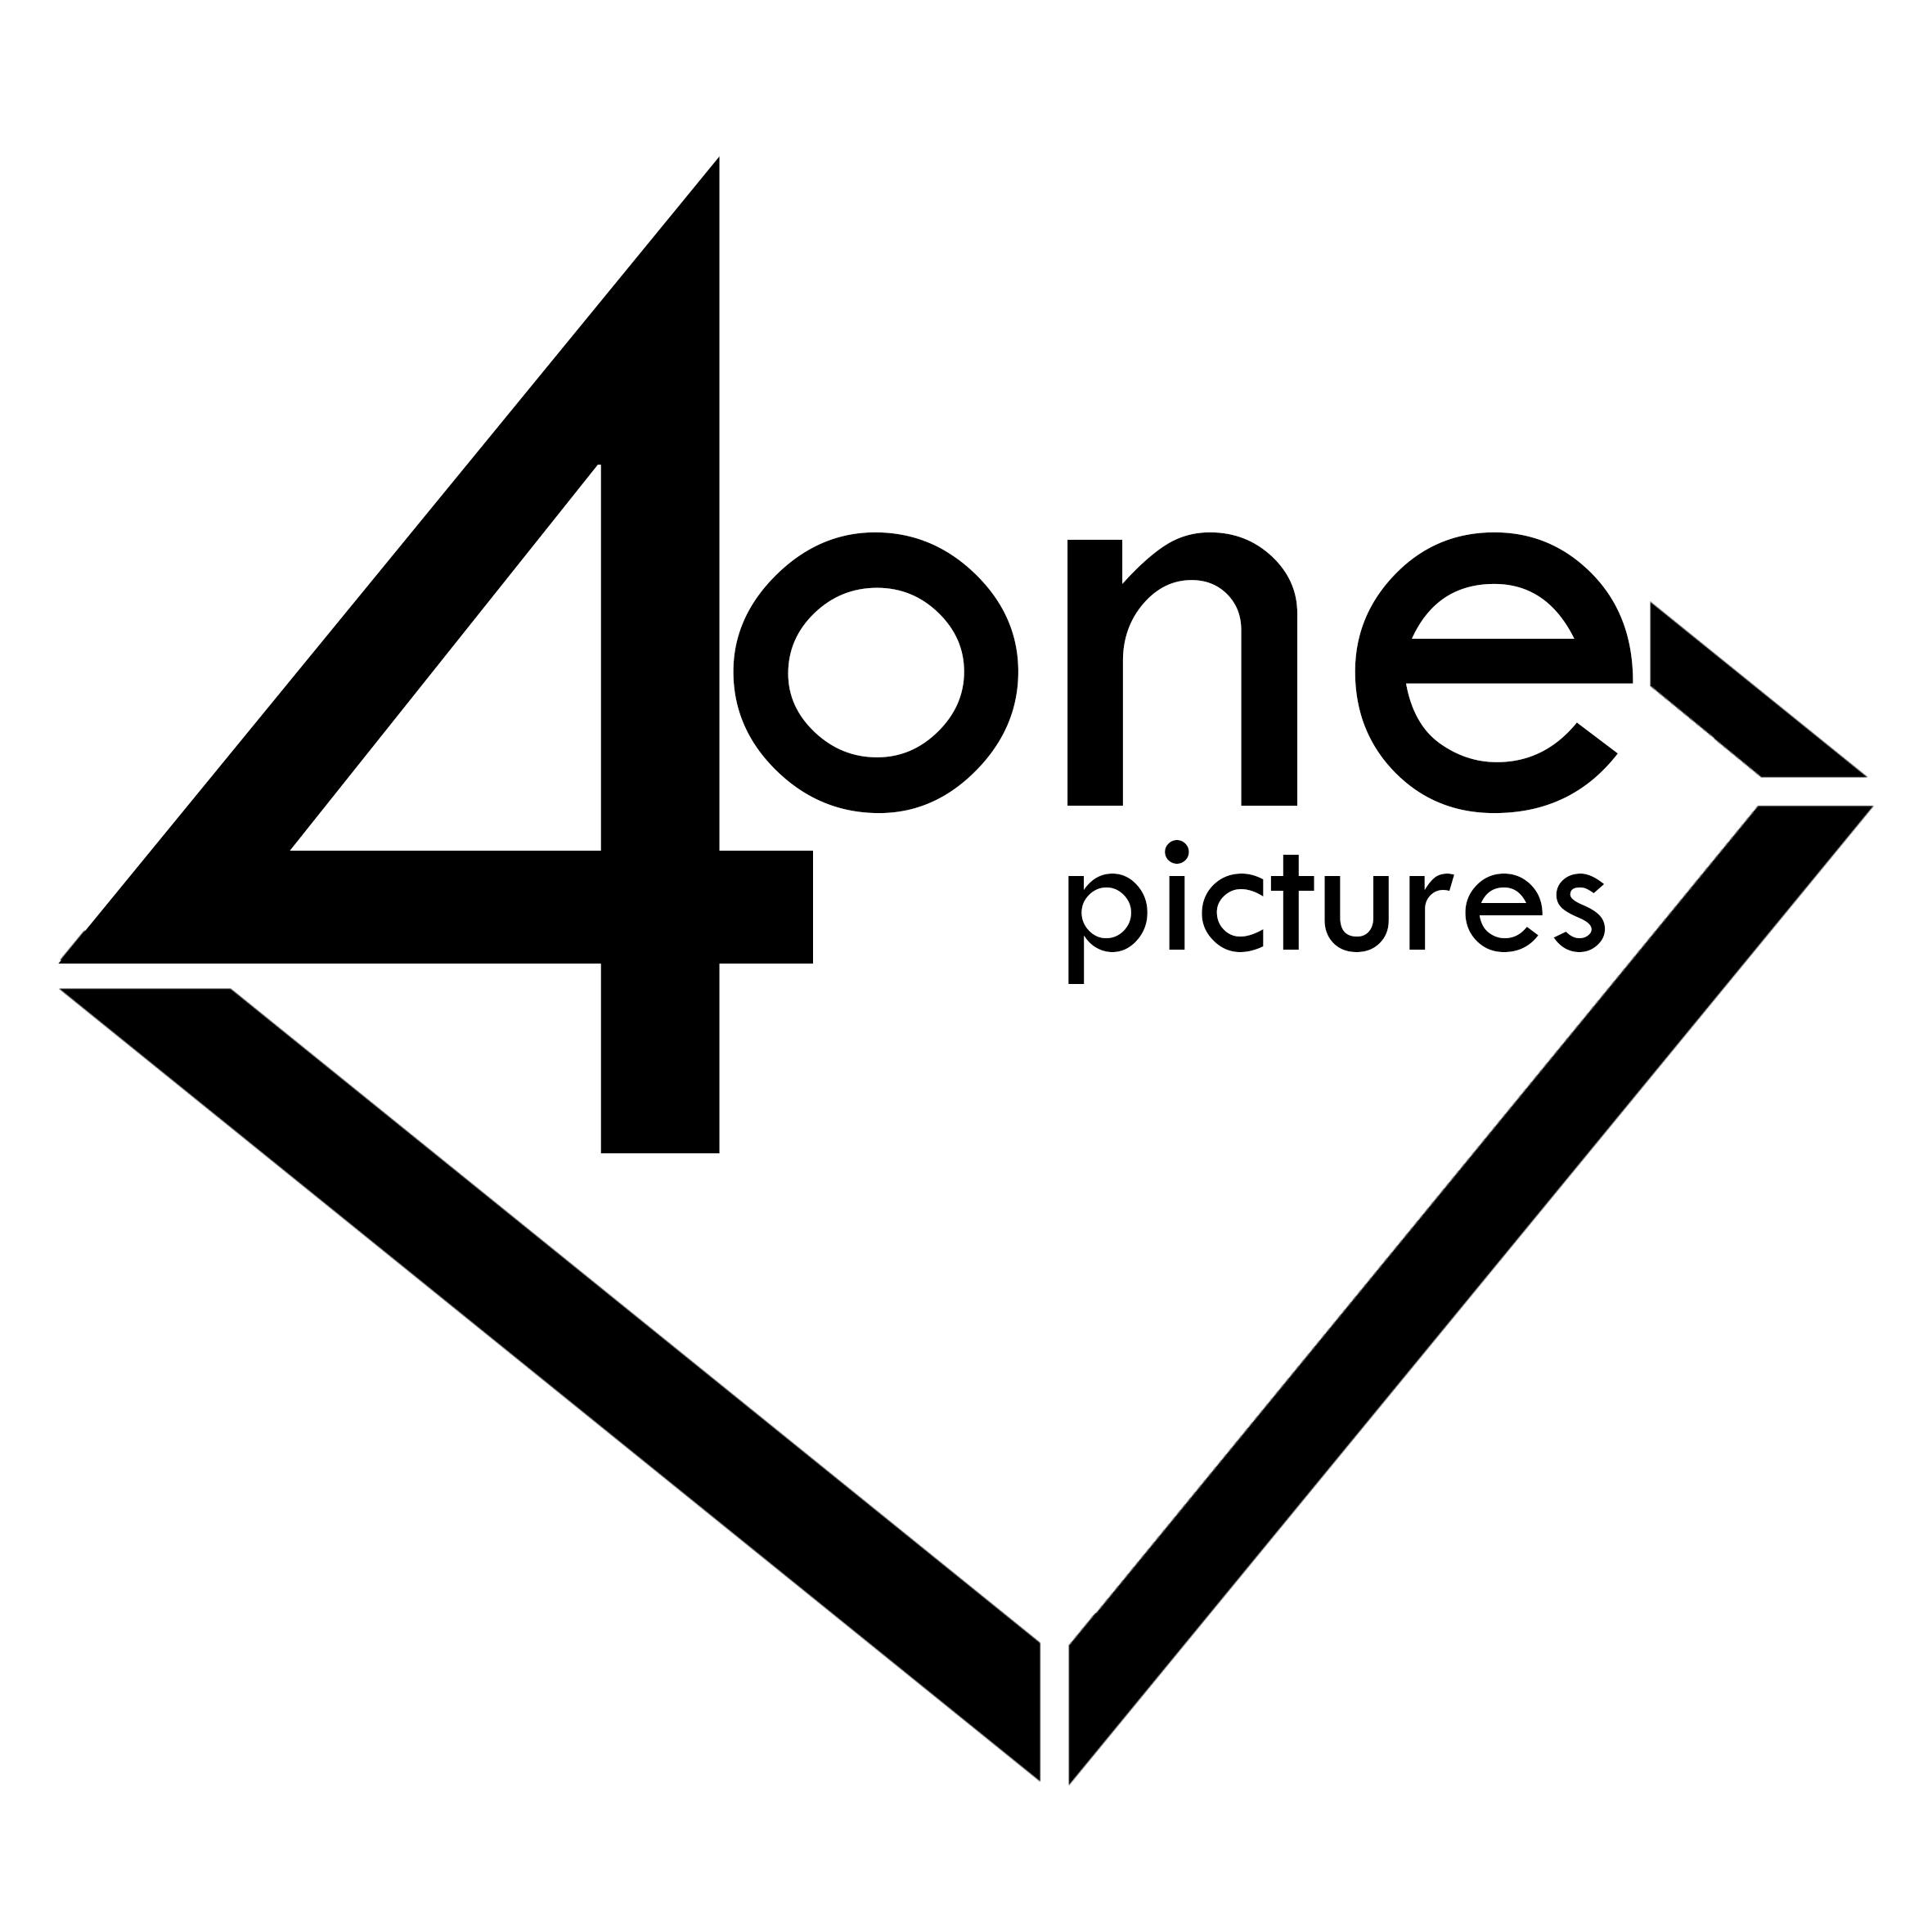 4onePictures